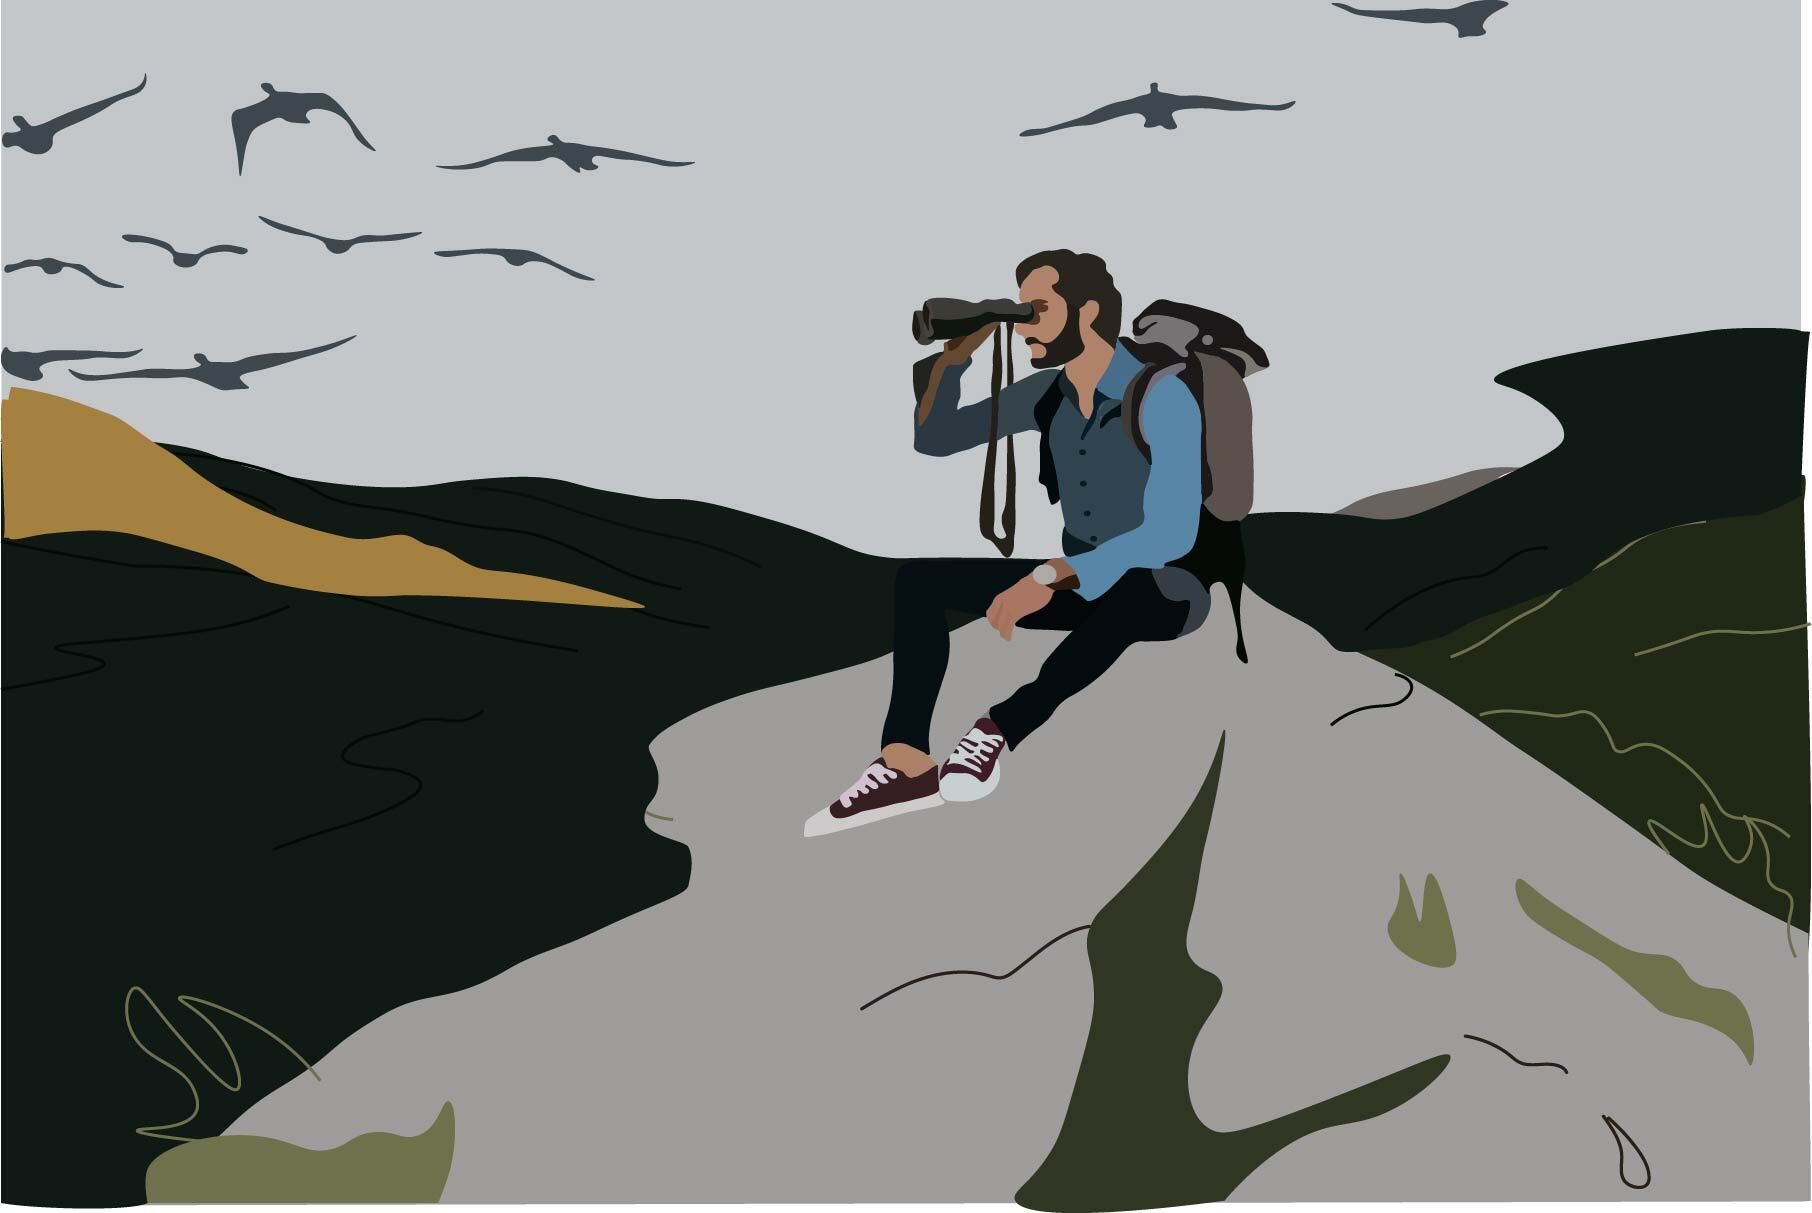 Illustration by Ellen Budell of an individual bird-watching on a hill